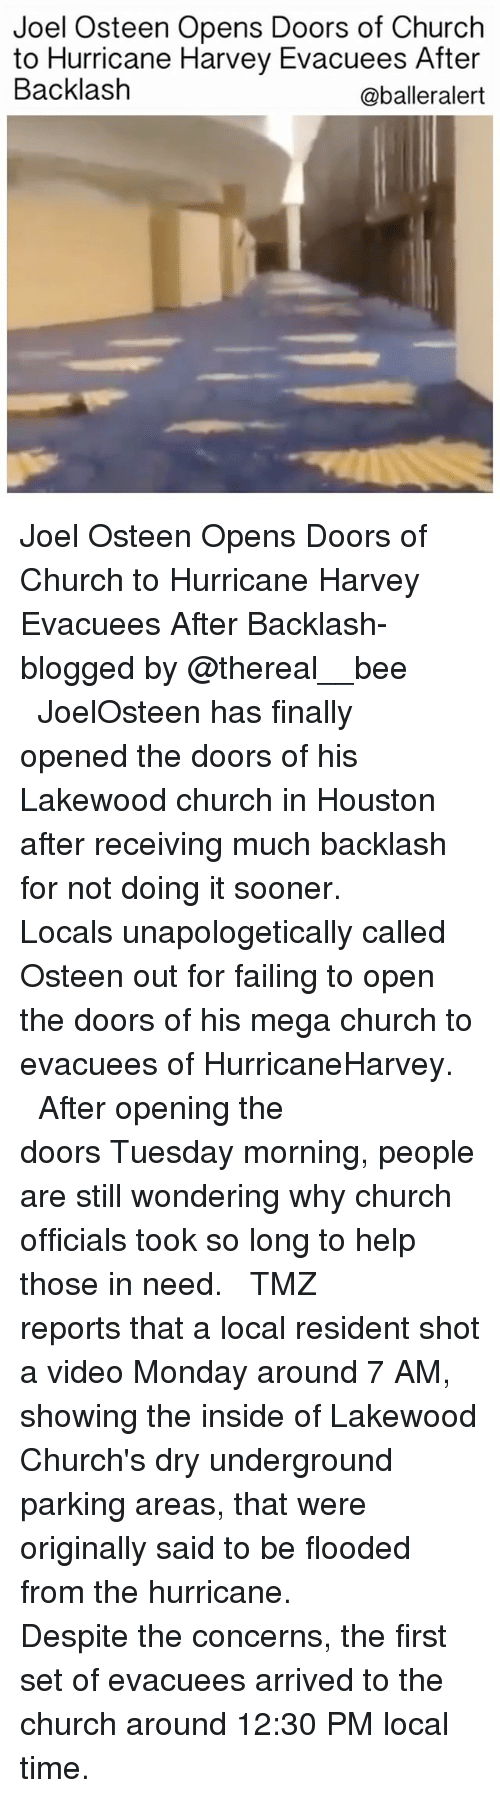 shotting: Joel Osteen Opens Doors of Church  to Hurricane Harvey Evacuees After  Backlash  @balleralert Joel Osteen Opens Doors of Church to Hurricane Harvey Evacuees After Backlash-blogged by @thereal__bee ⠀⠀⠀⠀⠀⠀⠀⠀⠀ ⠀⠀⠀⠀ JoelOsteen has finally opened the doors of his Lakewood church in Houston after receiving much backlash for not doing it sooner. ⠀⠀⠀⠀⠀⠀⠀⠀⠀ ⠀⠀⠀⠀ Locals unapologetically called Osteen out for failing to open the doors of his mega church to evacuees of HurricaneHarvey. ⠀⠀⠀⠀⠀⠀⠀⠀⠀ ⠀⠀⠀⠀ After opening the doors Tuesday morning, people are still wondering why church officials took so long to help those in need. ⠀⠀⠀⠀⠀⠀⠀⠀⠀ ⠀⠀⠀⠀ TMZ reports that a local resident shot a video Monday around 7 AM, showing the inside of Lakewood Church's dry underground parking areas, that were originally said to be flooded from the hurricane. ⠀⠀⠀⠀⠀⠀⠀⠀⠀ ⠀⠀⠀⠀ Despite the concerns, the first set of evacuees arrived to the church around 12:30 PM local time. ⠀⠀⠀⠀⠀⠀⠀⠀